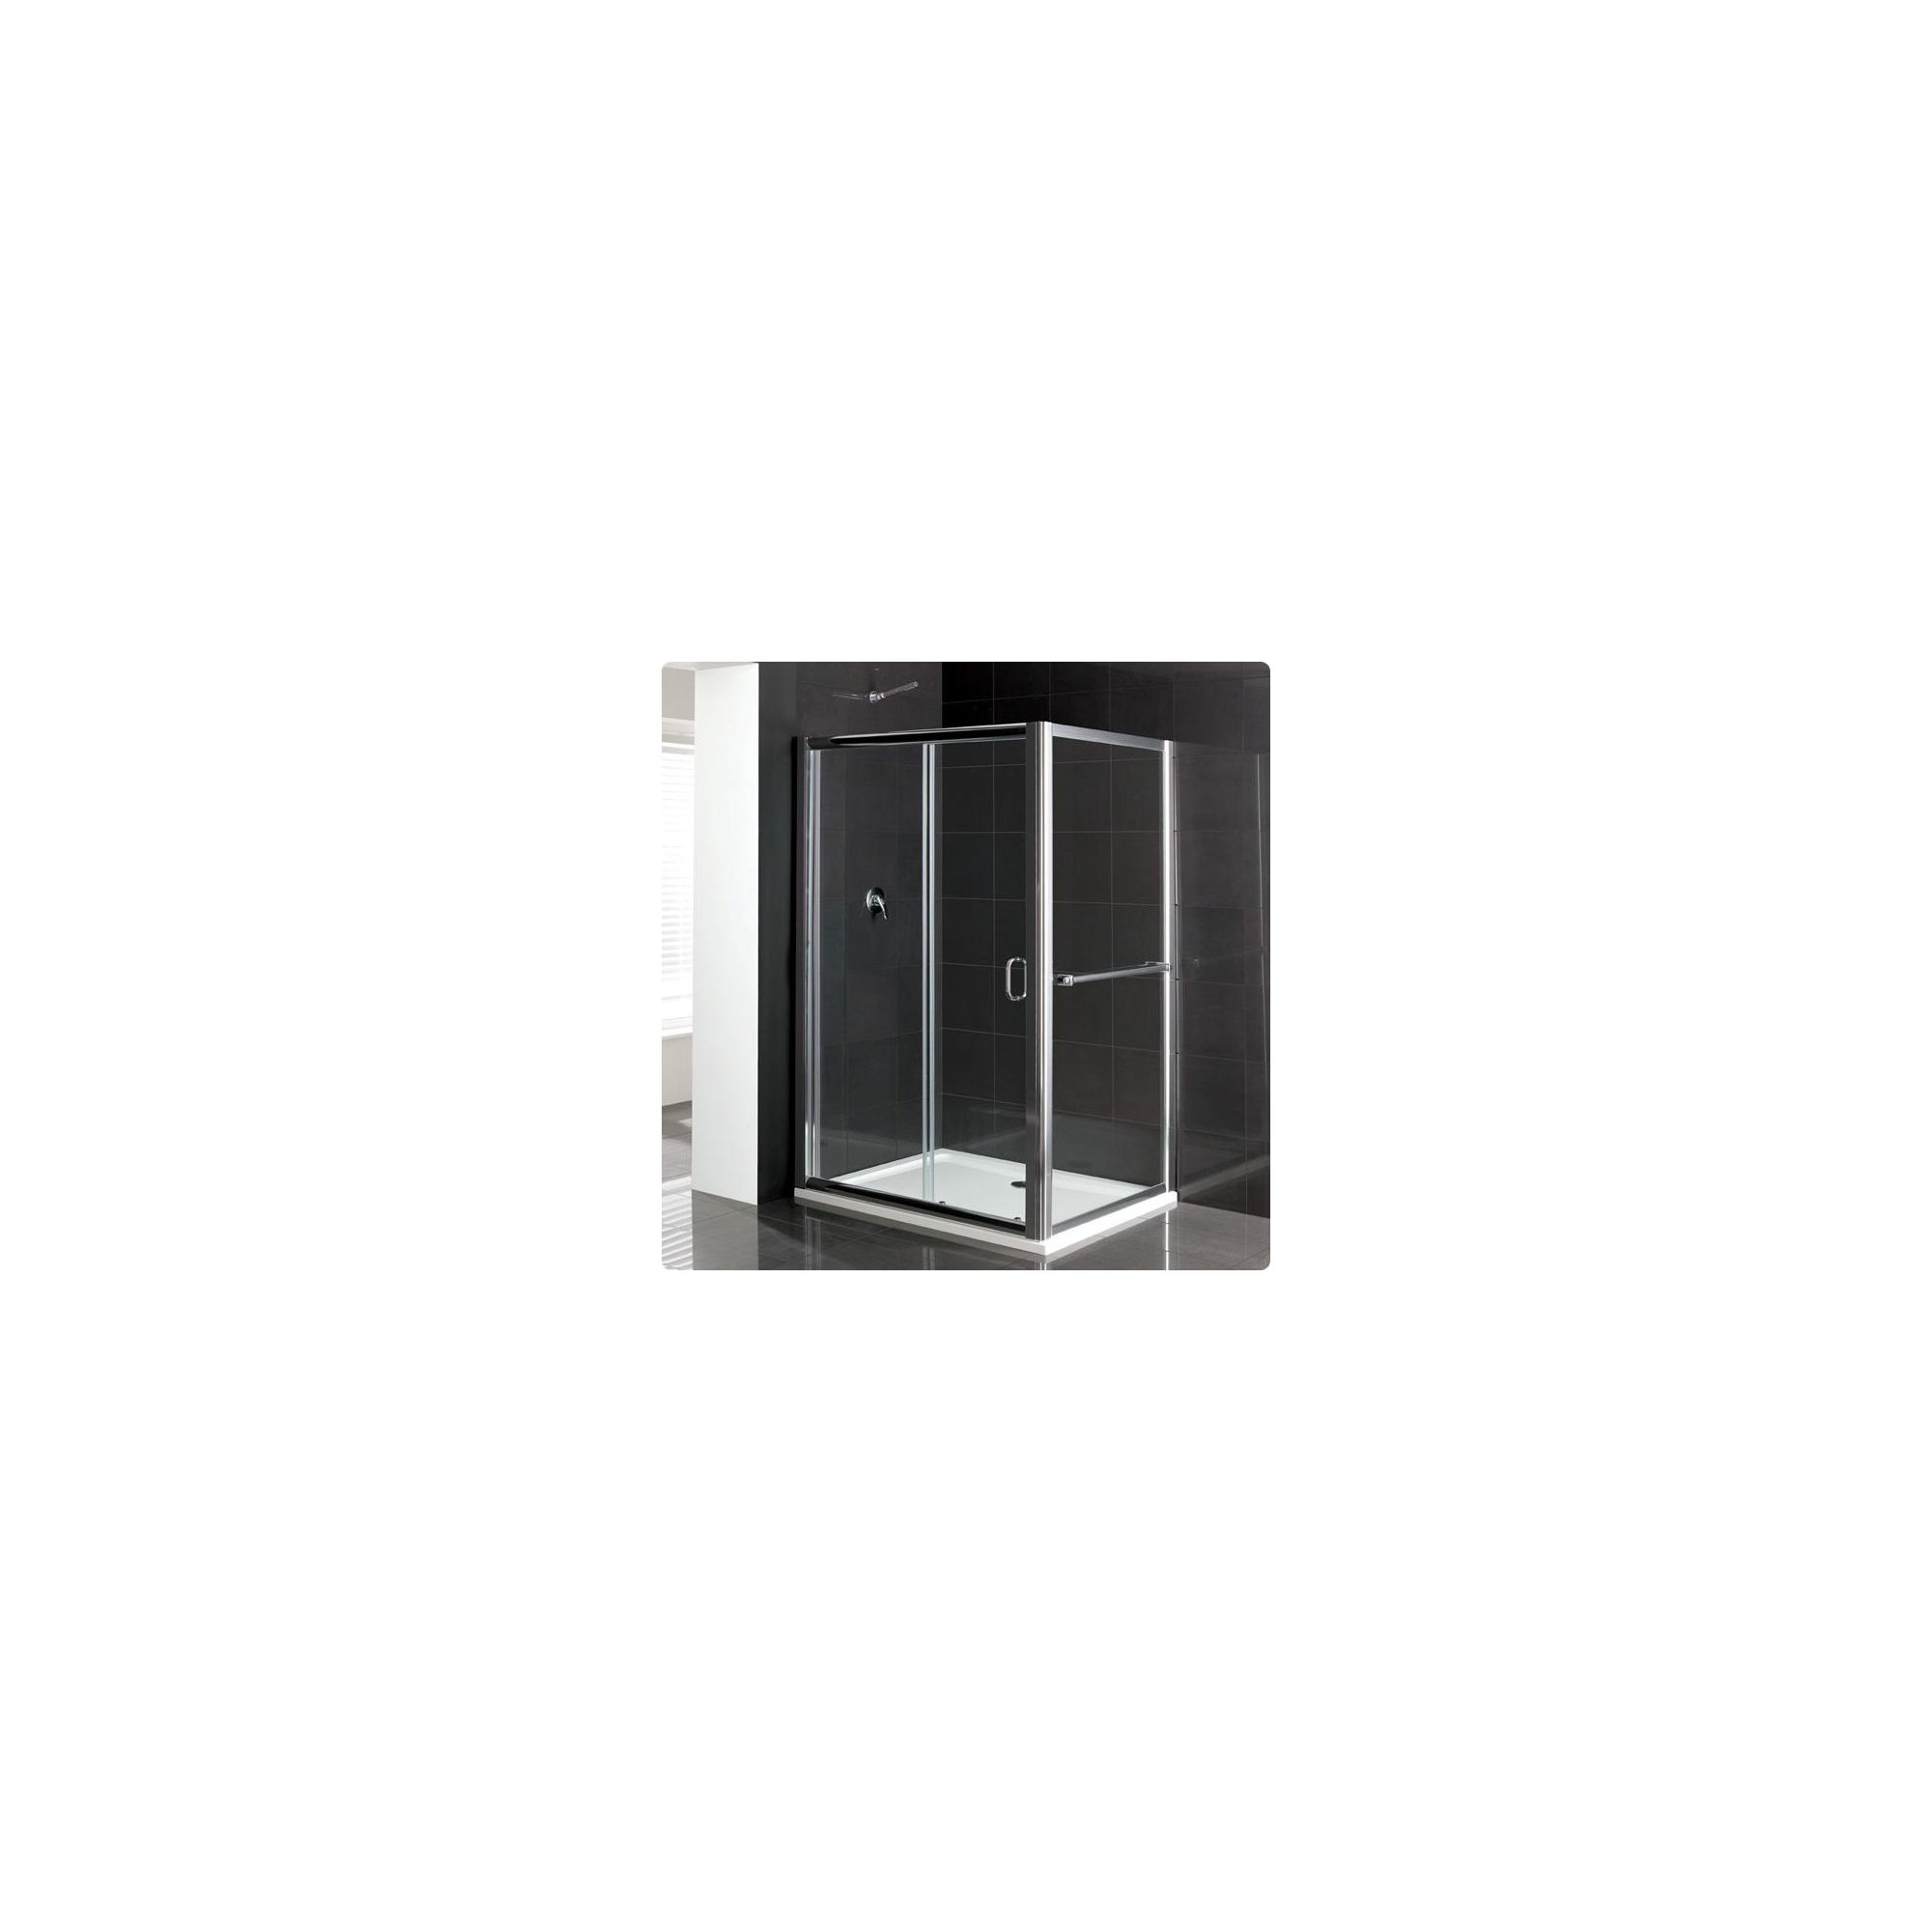 Duchy Elite Silver Sliding Door Shower Enclosure with Towel Rail, 1400mm x 800mm, Standard Tray, 6mm Glass at Tesco Direct